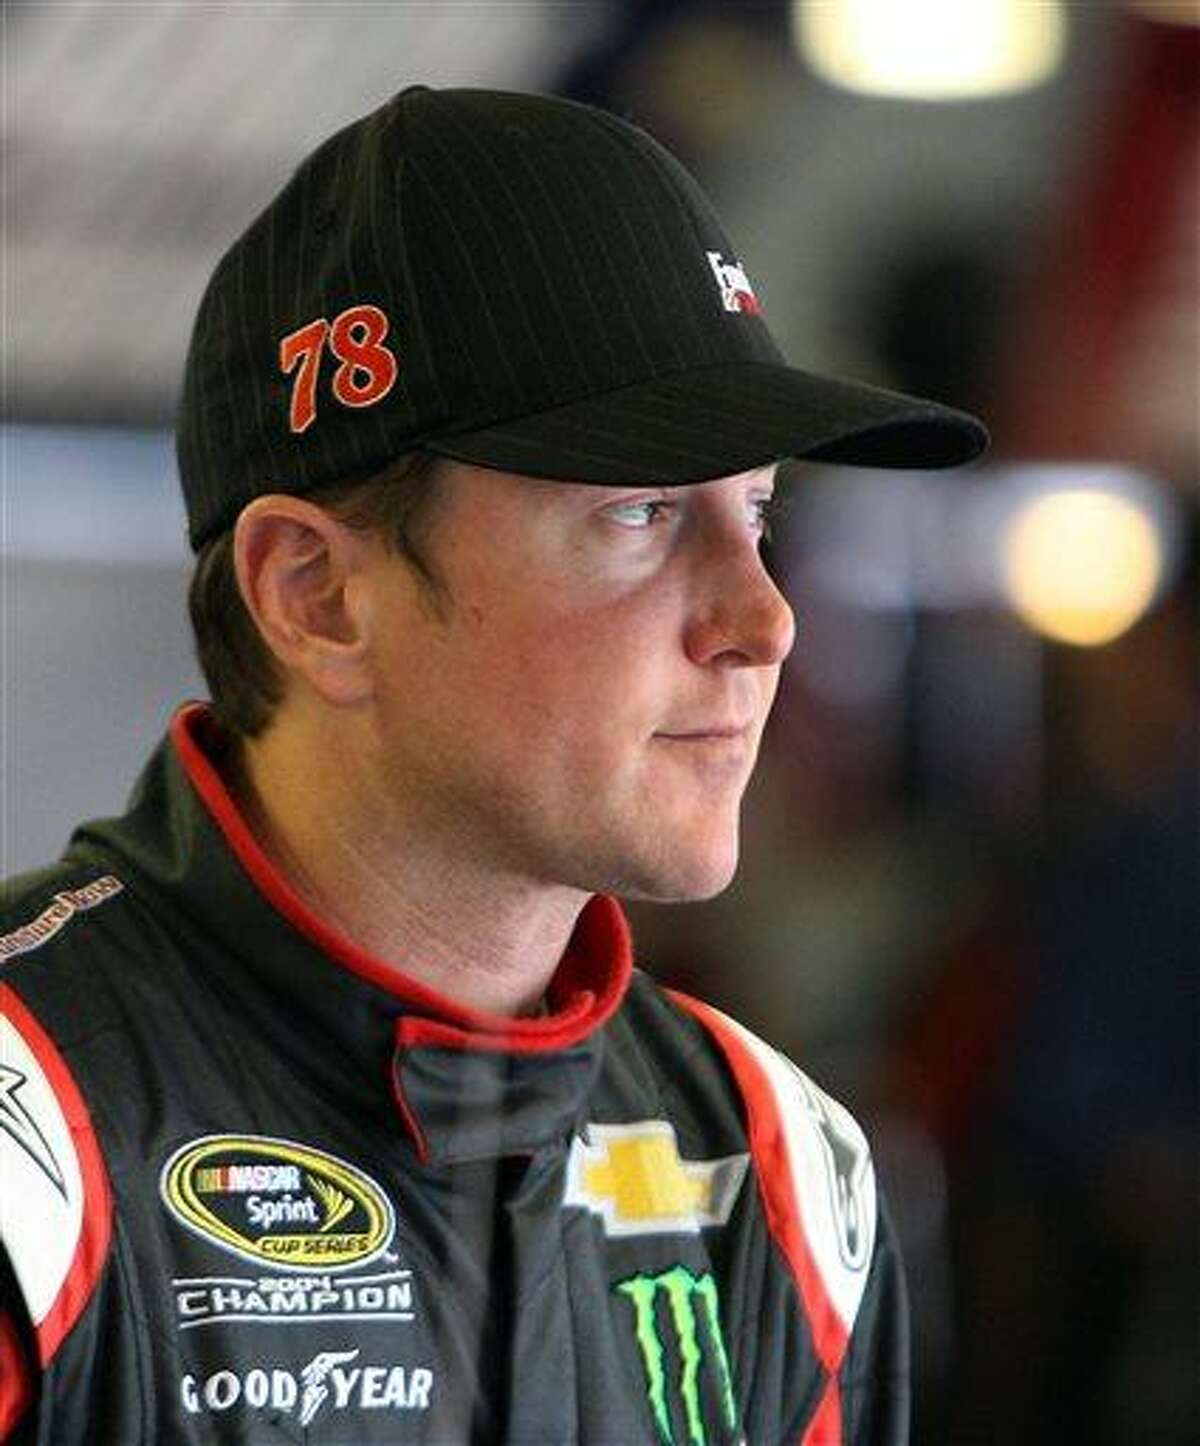 Kurt Busch gets ready for the final practice before Sunday's NASCAR Sprint Cup auto race at New Hampshire Motor Speedway, Saturday, July 13, 2013 in Loudon, N.H. (AP Photo/Jim Cole)